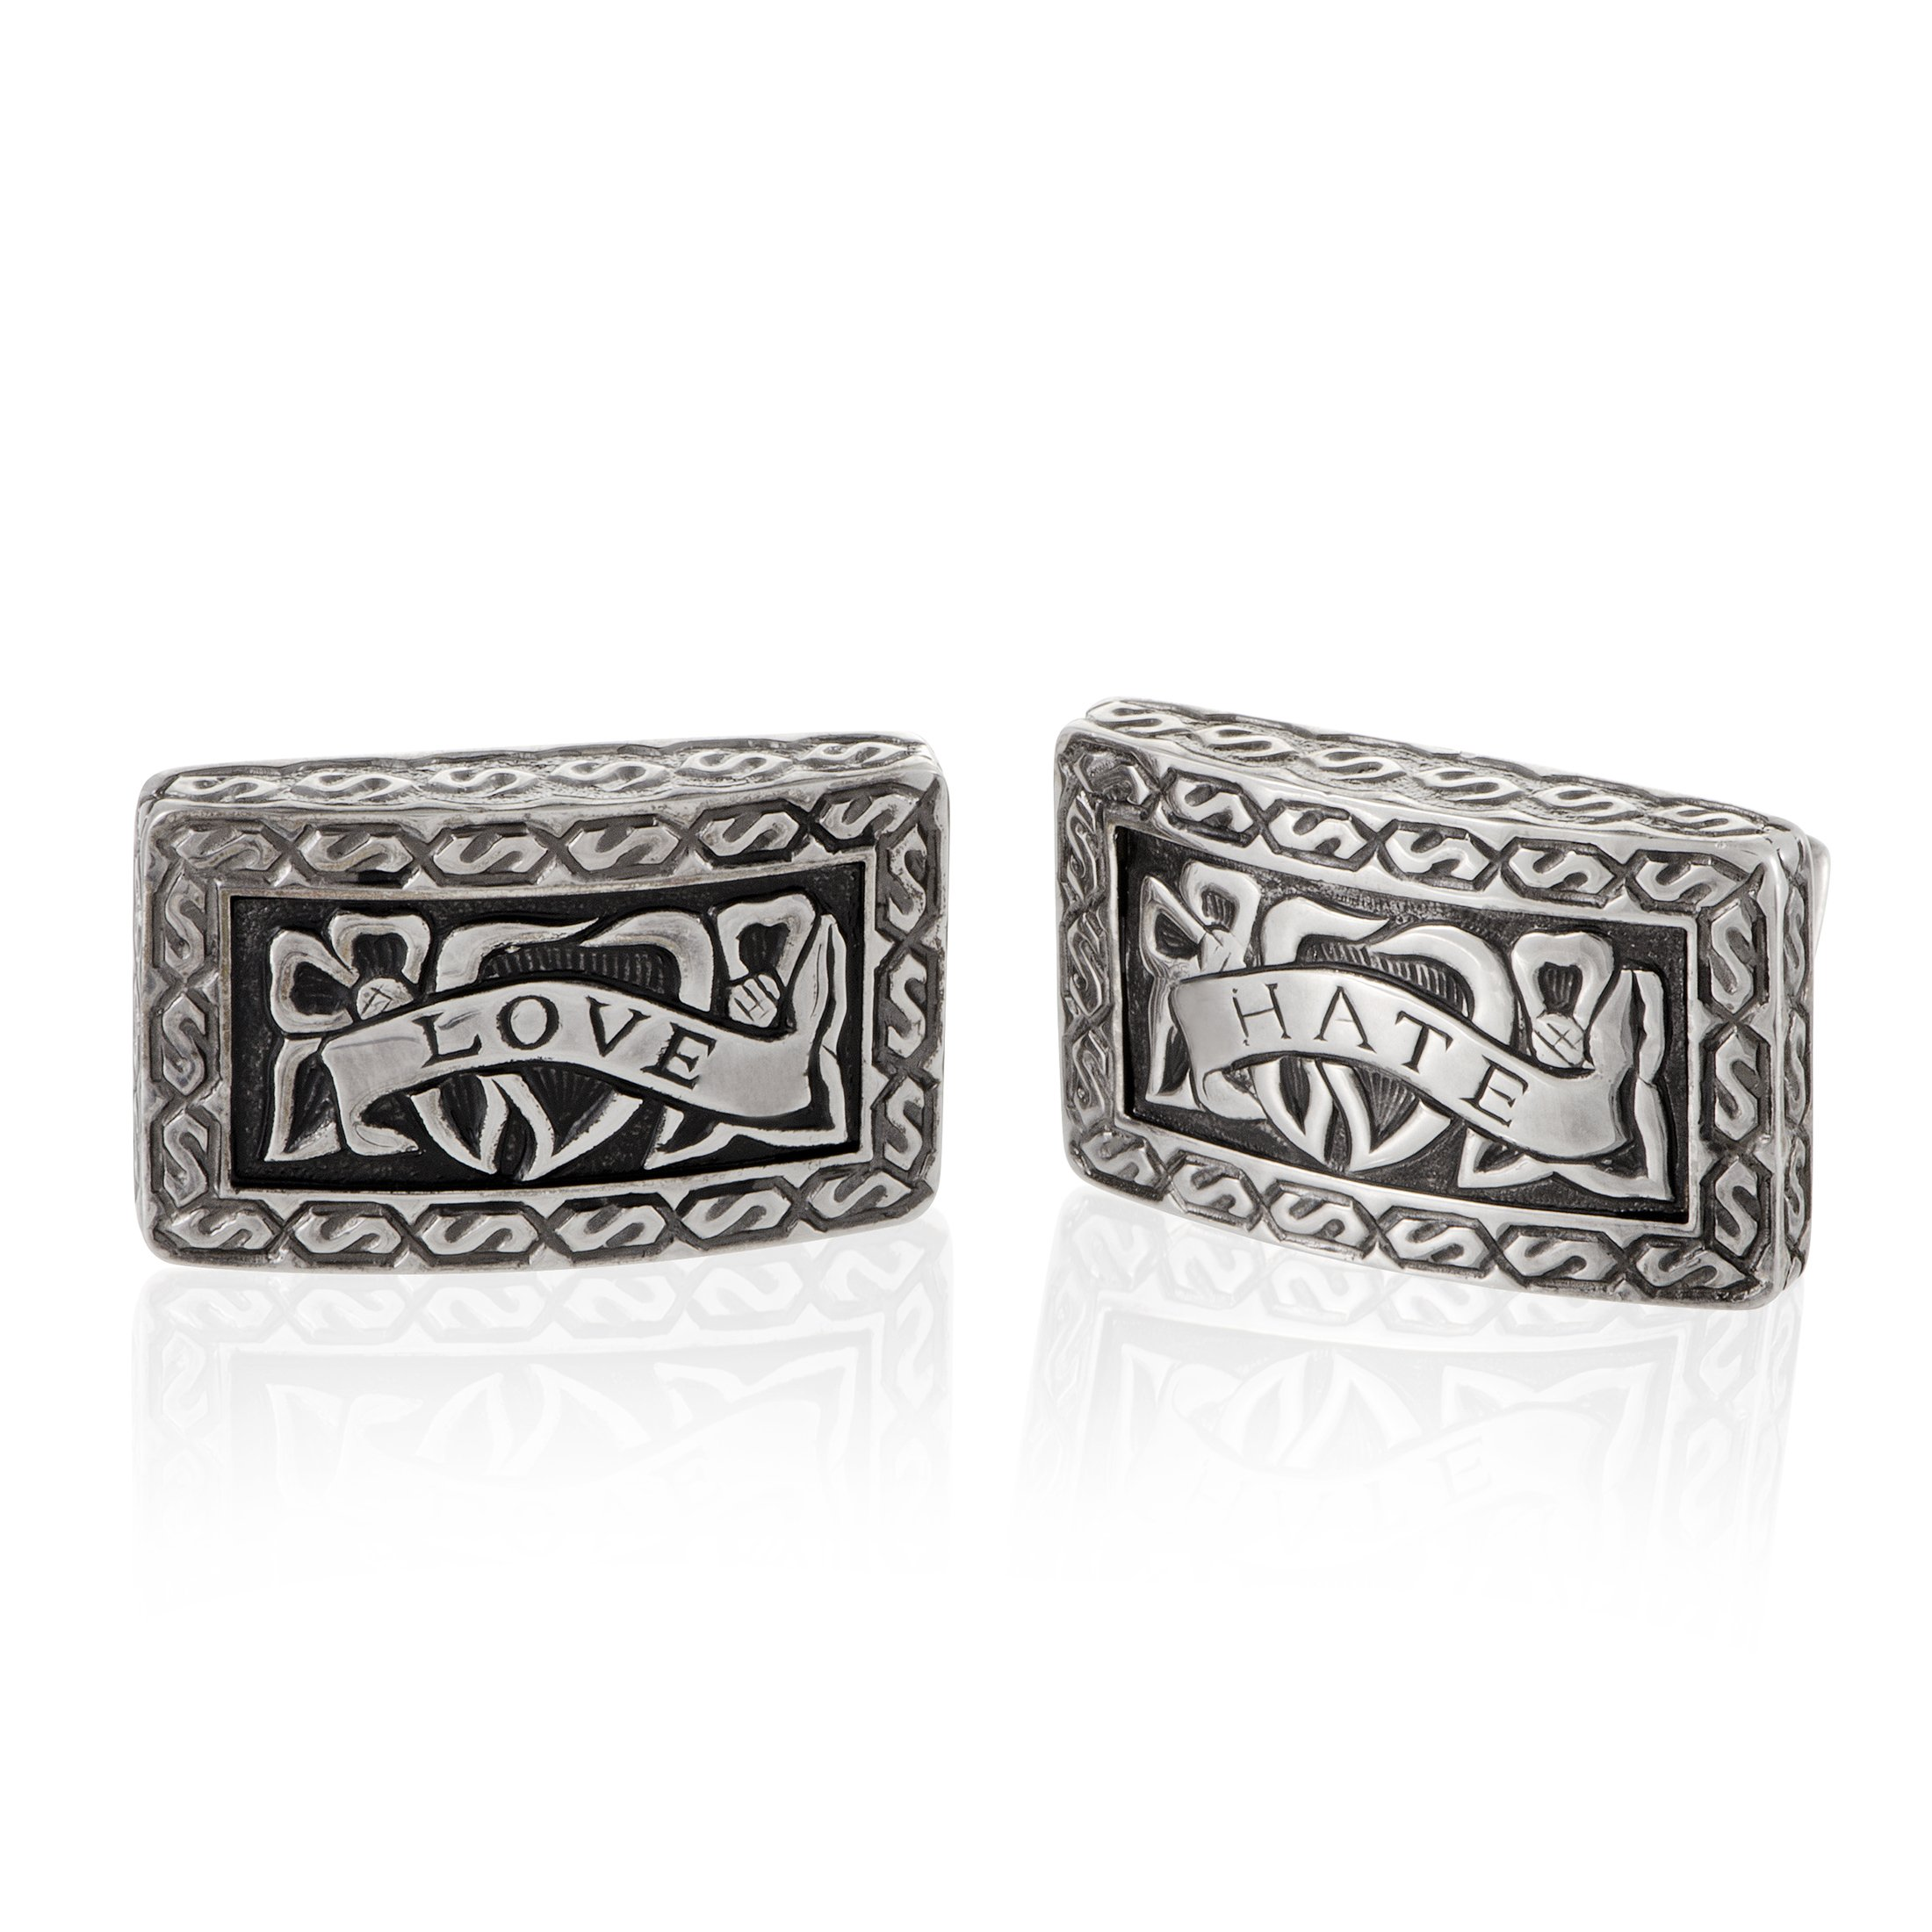 Stephen Webster Love and Hate Mens Silver Cufflinks